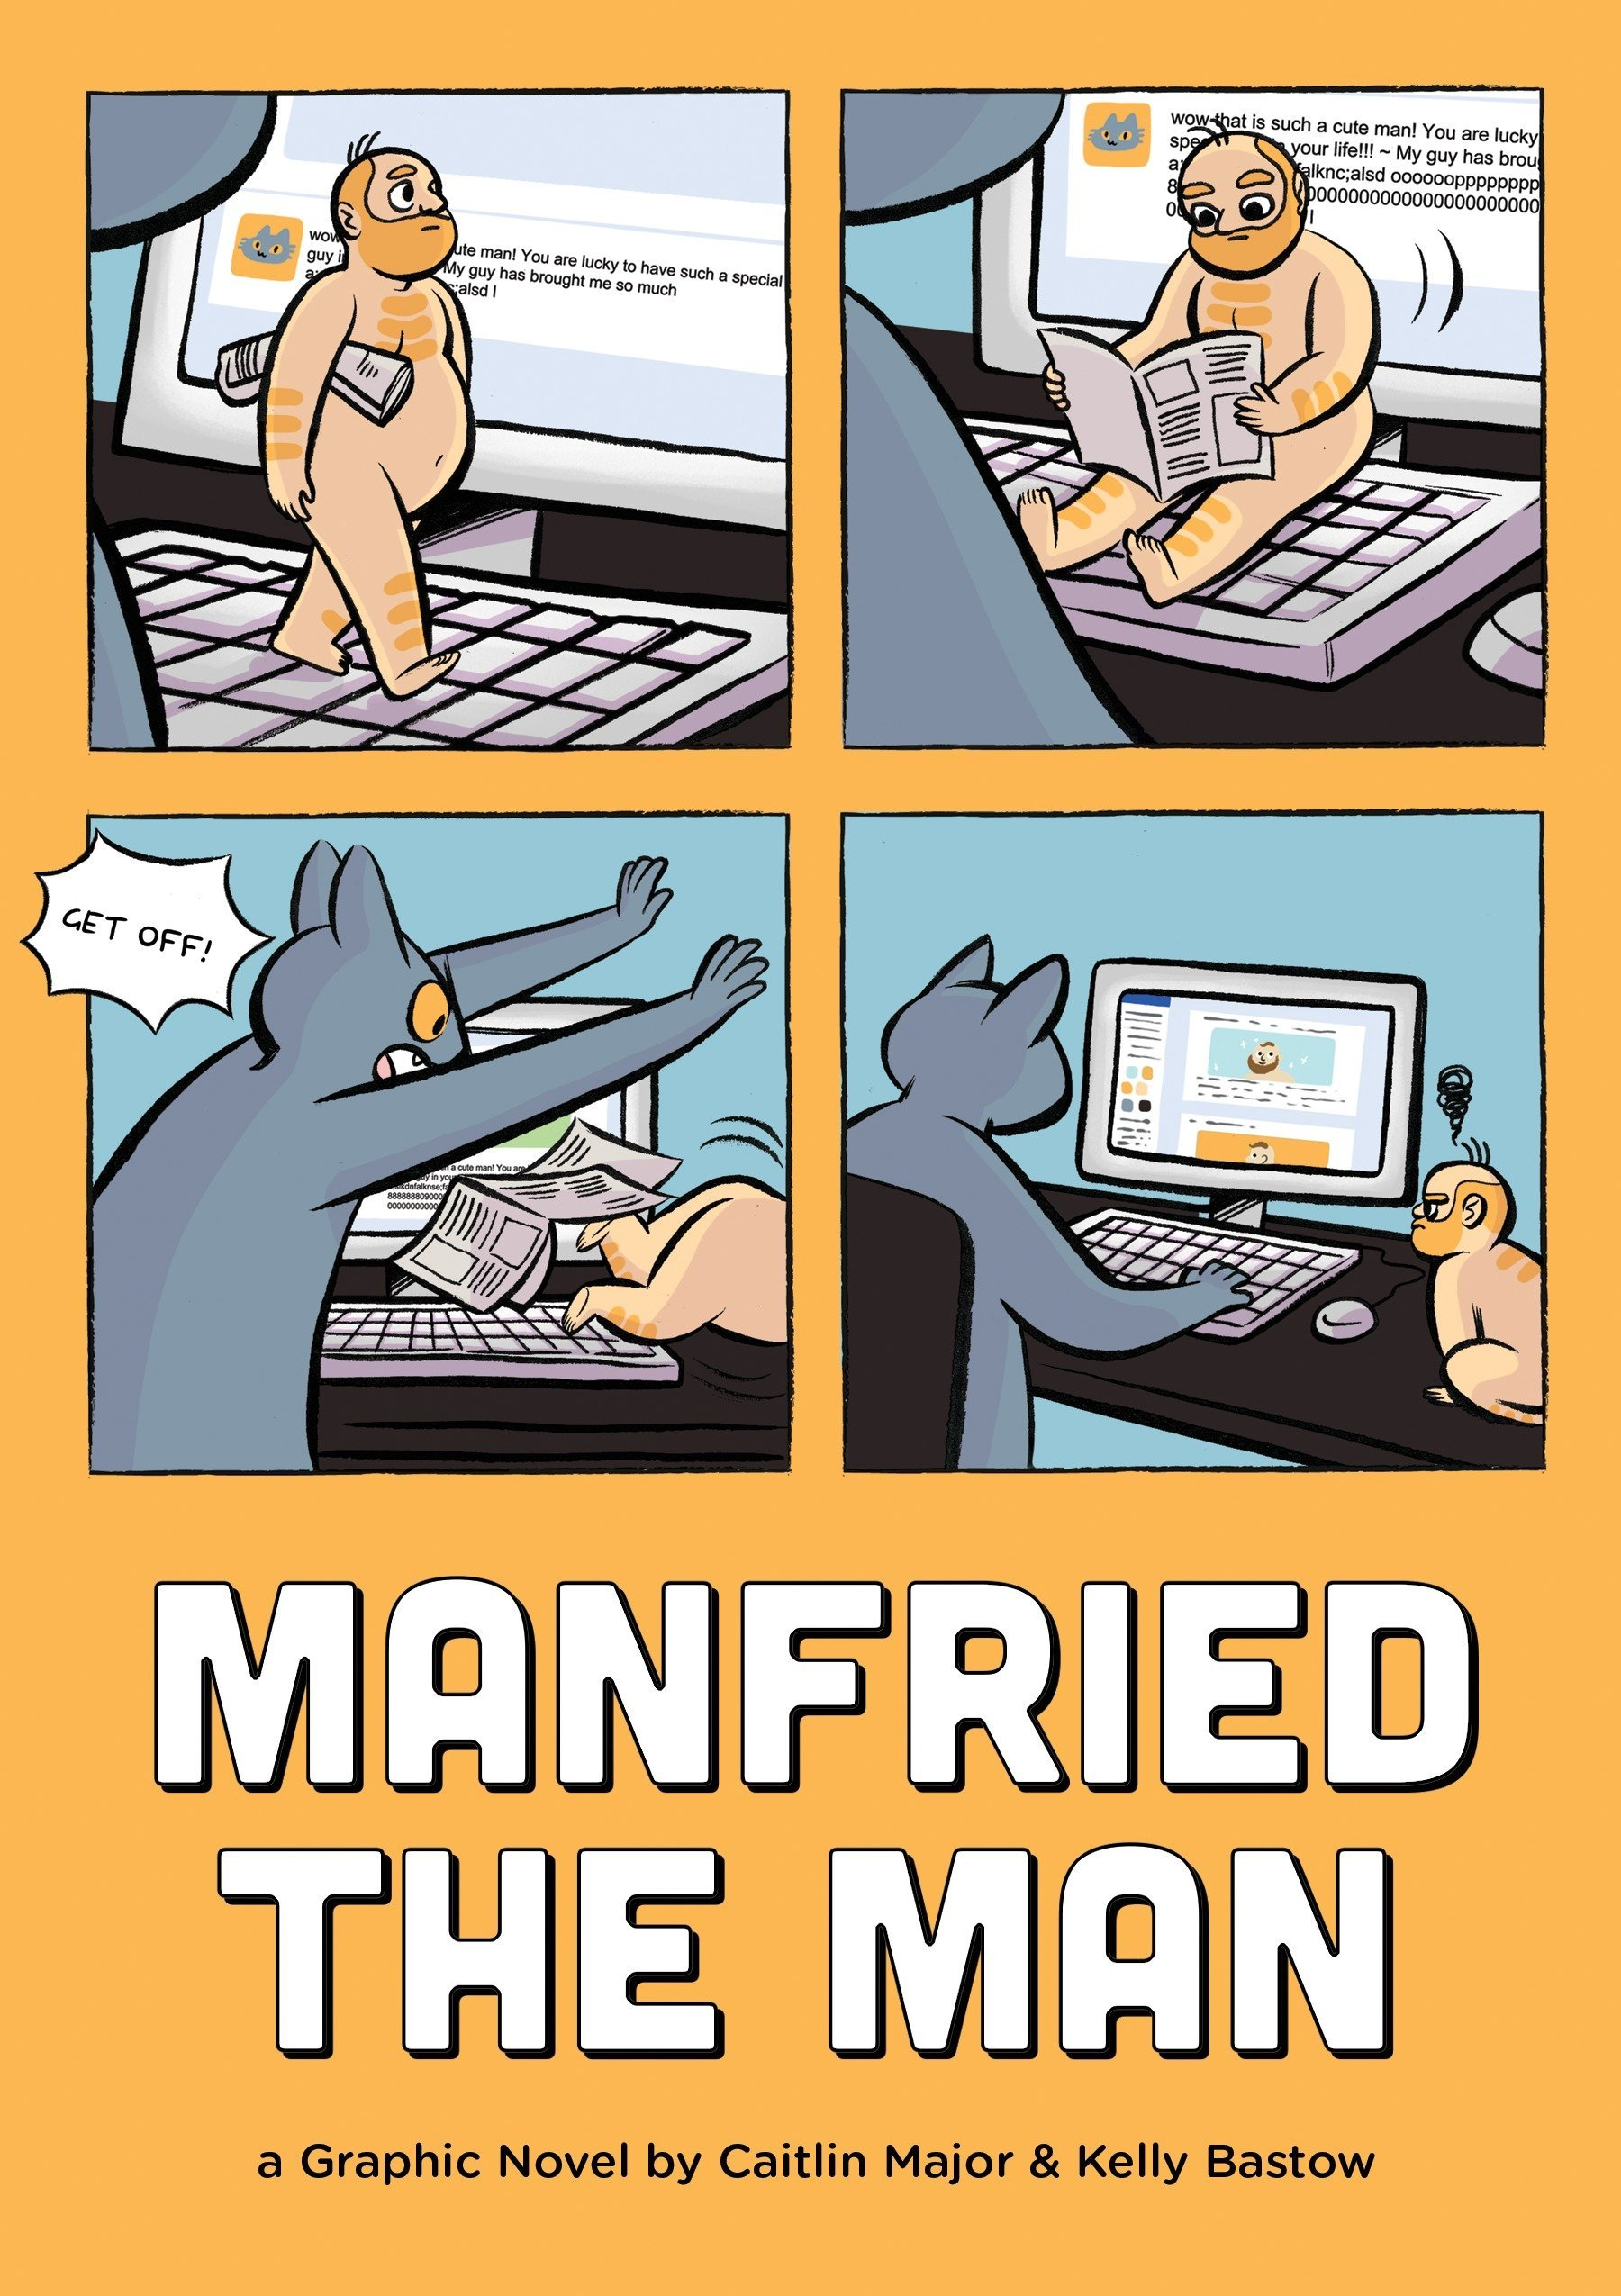 Review: Manfried the Man by Caitlin Major & Kelly Bastow